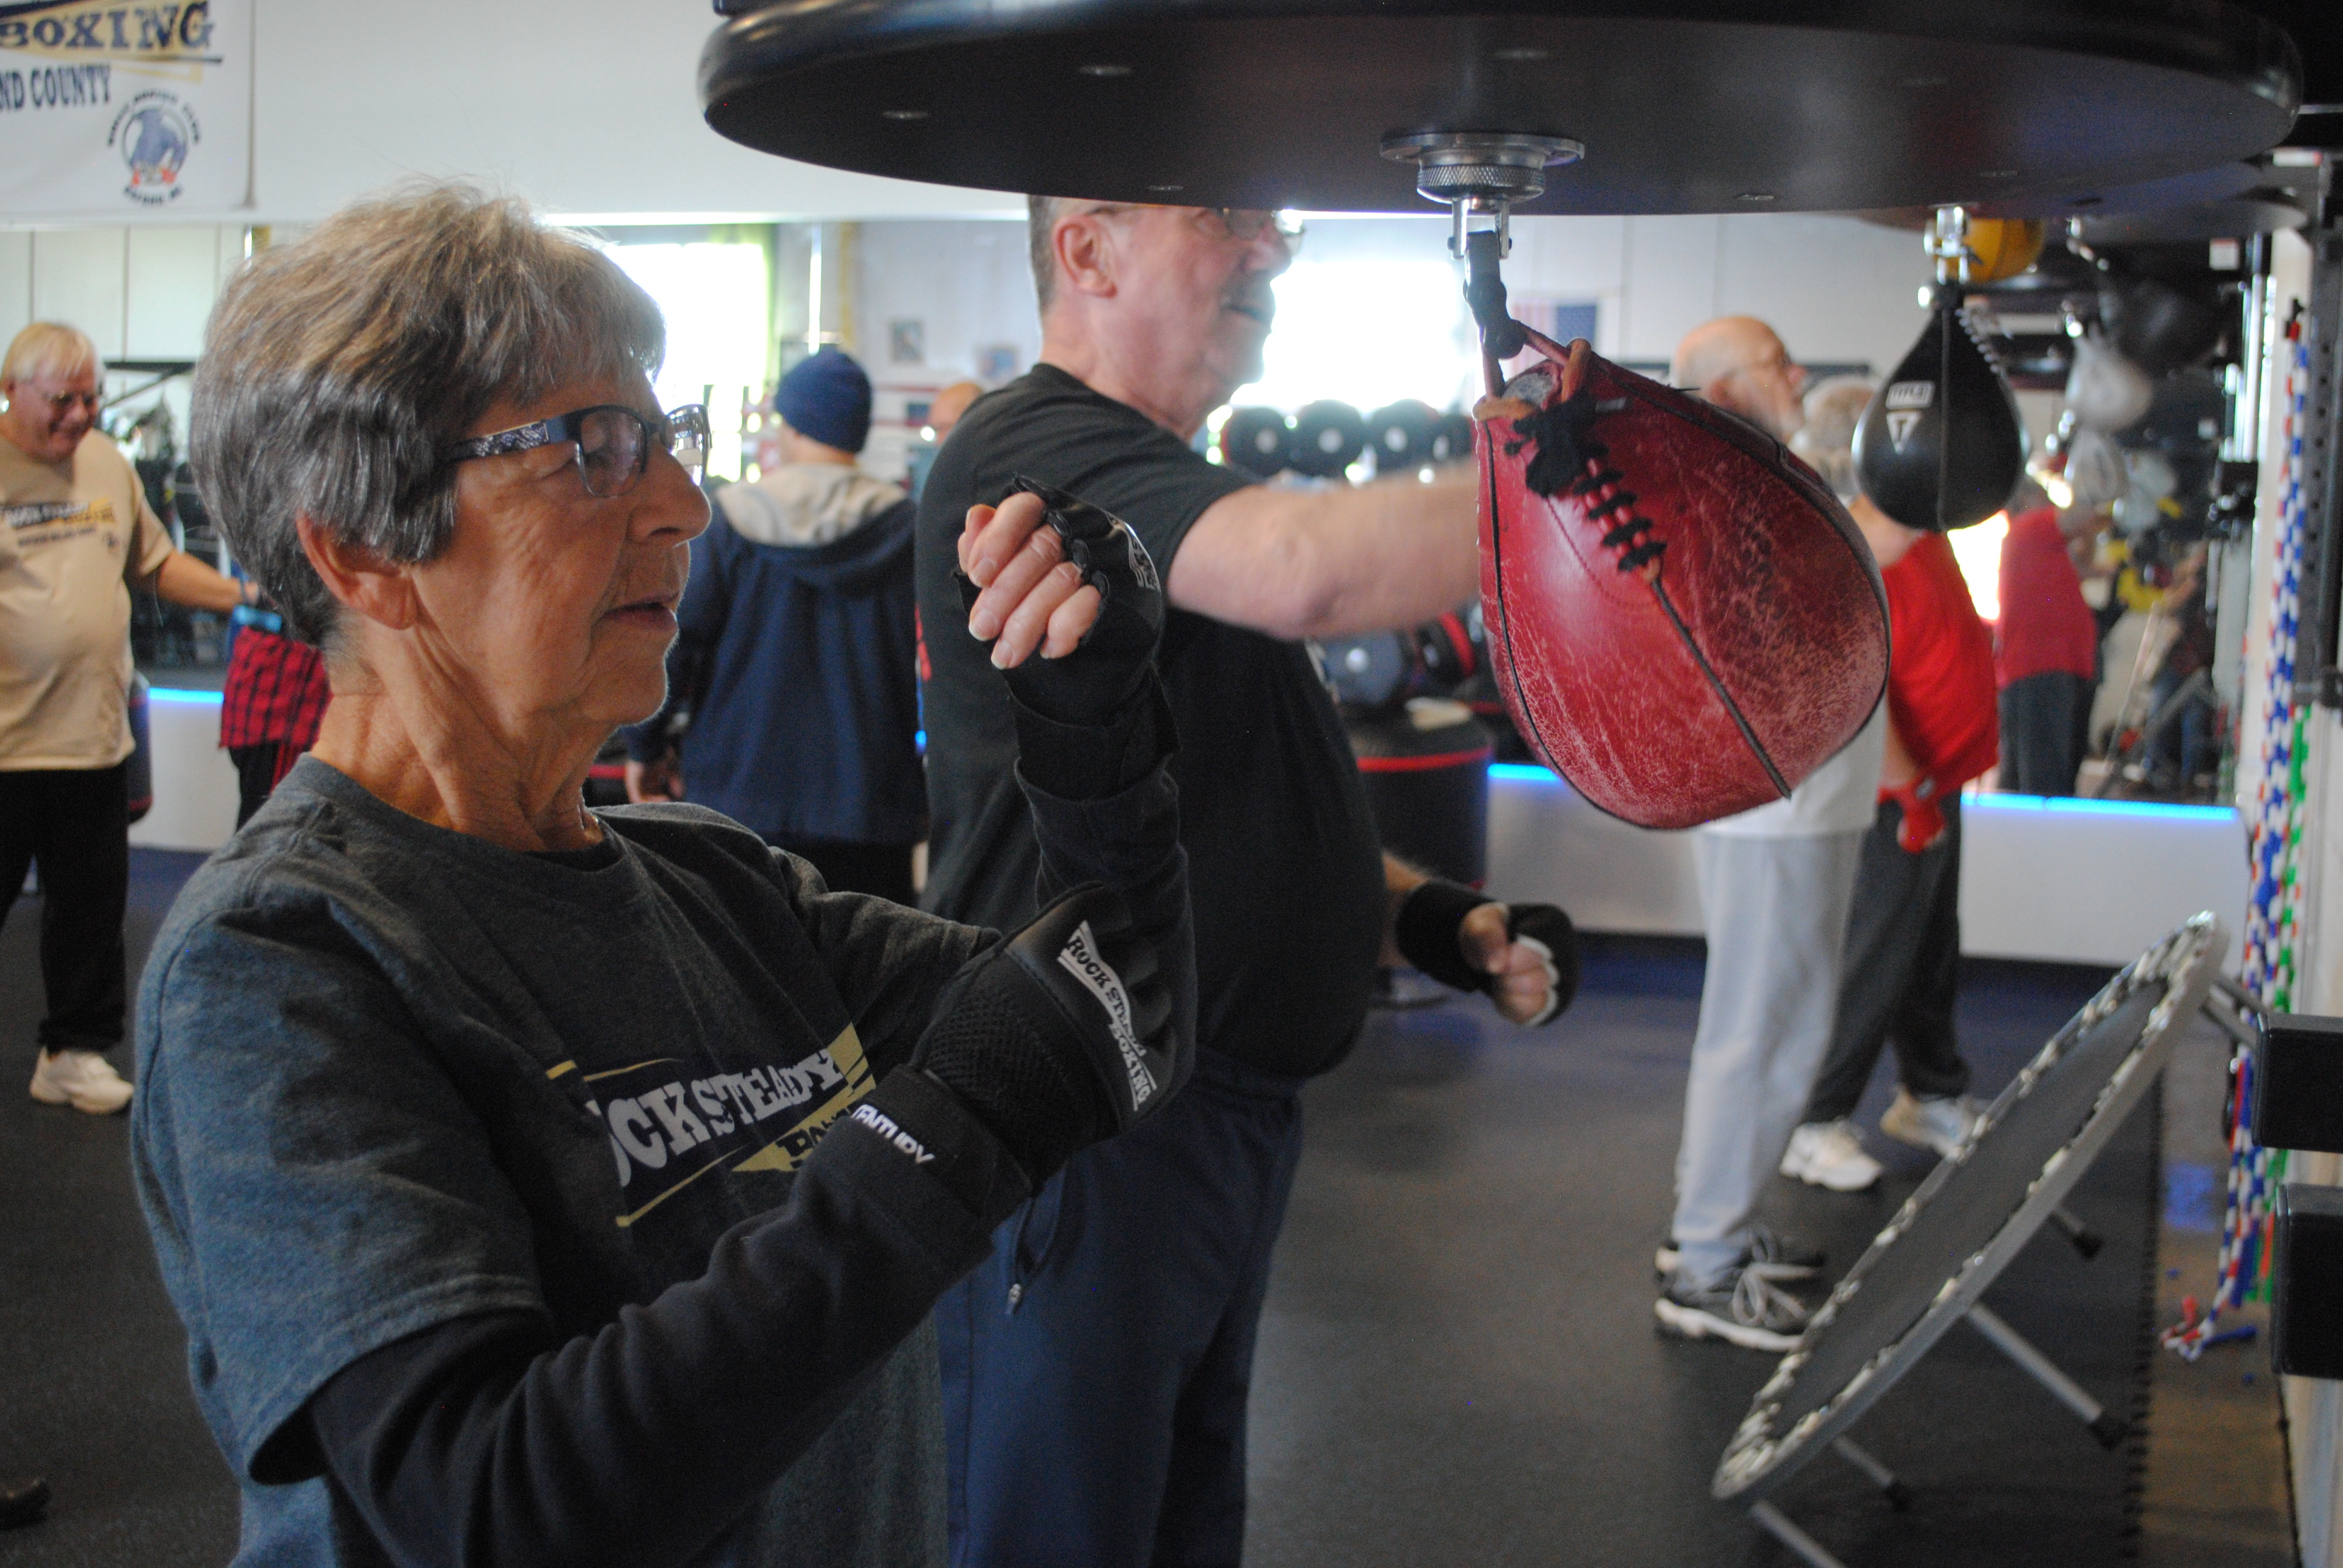 Lois Dockham takes on a speed bag during a Rock Steady class. She might be smaller than her classmates, but she has the speed bag pounding the wall just like the rest. Photo by Shelby Tankersley.